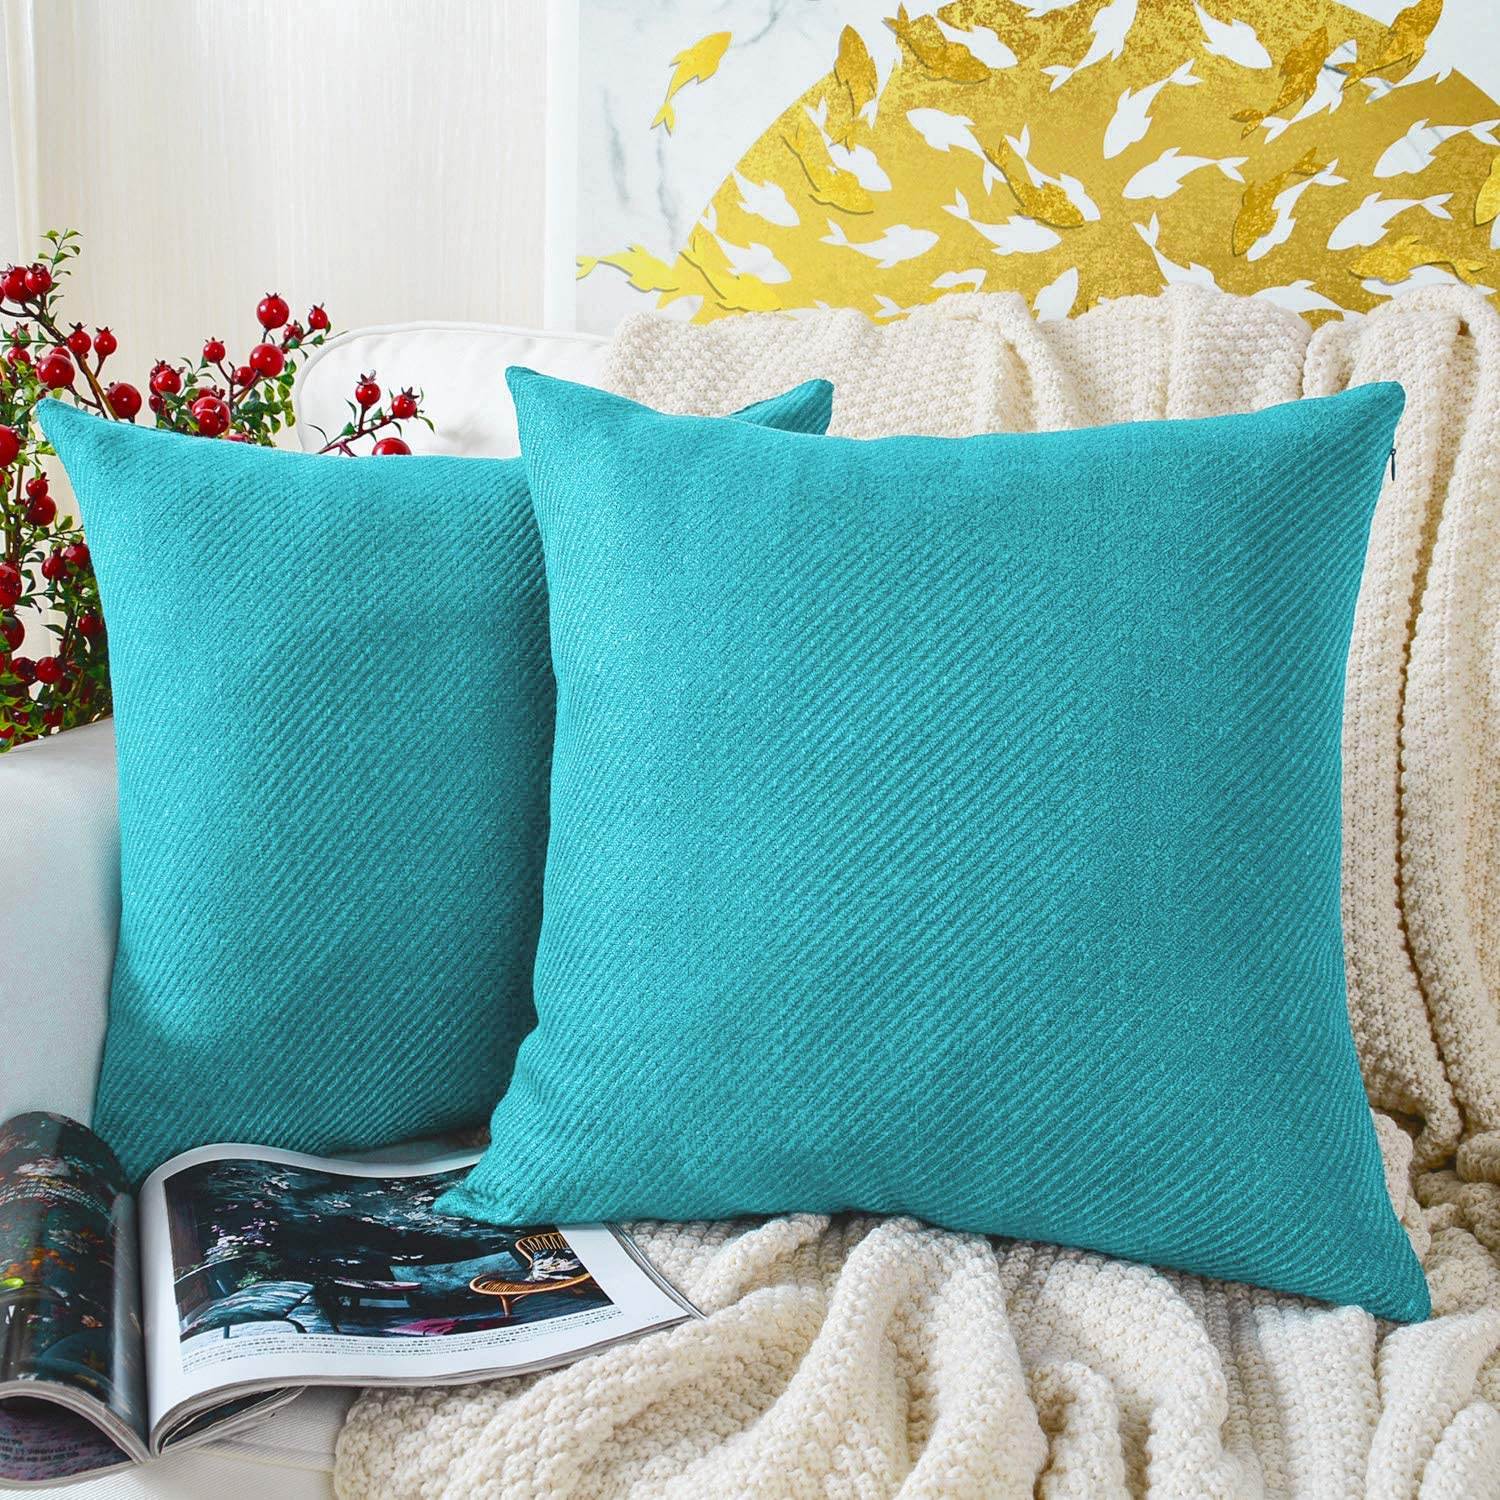 MERNETTE Pack of 2, Chenille Soft Decorative Square Throw Pillow Cover Cushion Covers Pillowcase, Home Decor Decorations for Sofa Couch Bed Chair 18x18 Inch/45x45 cm (River Blue)